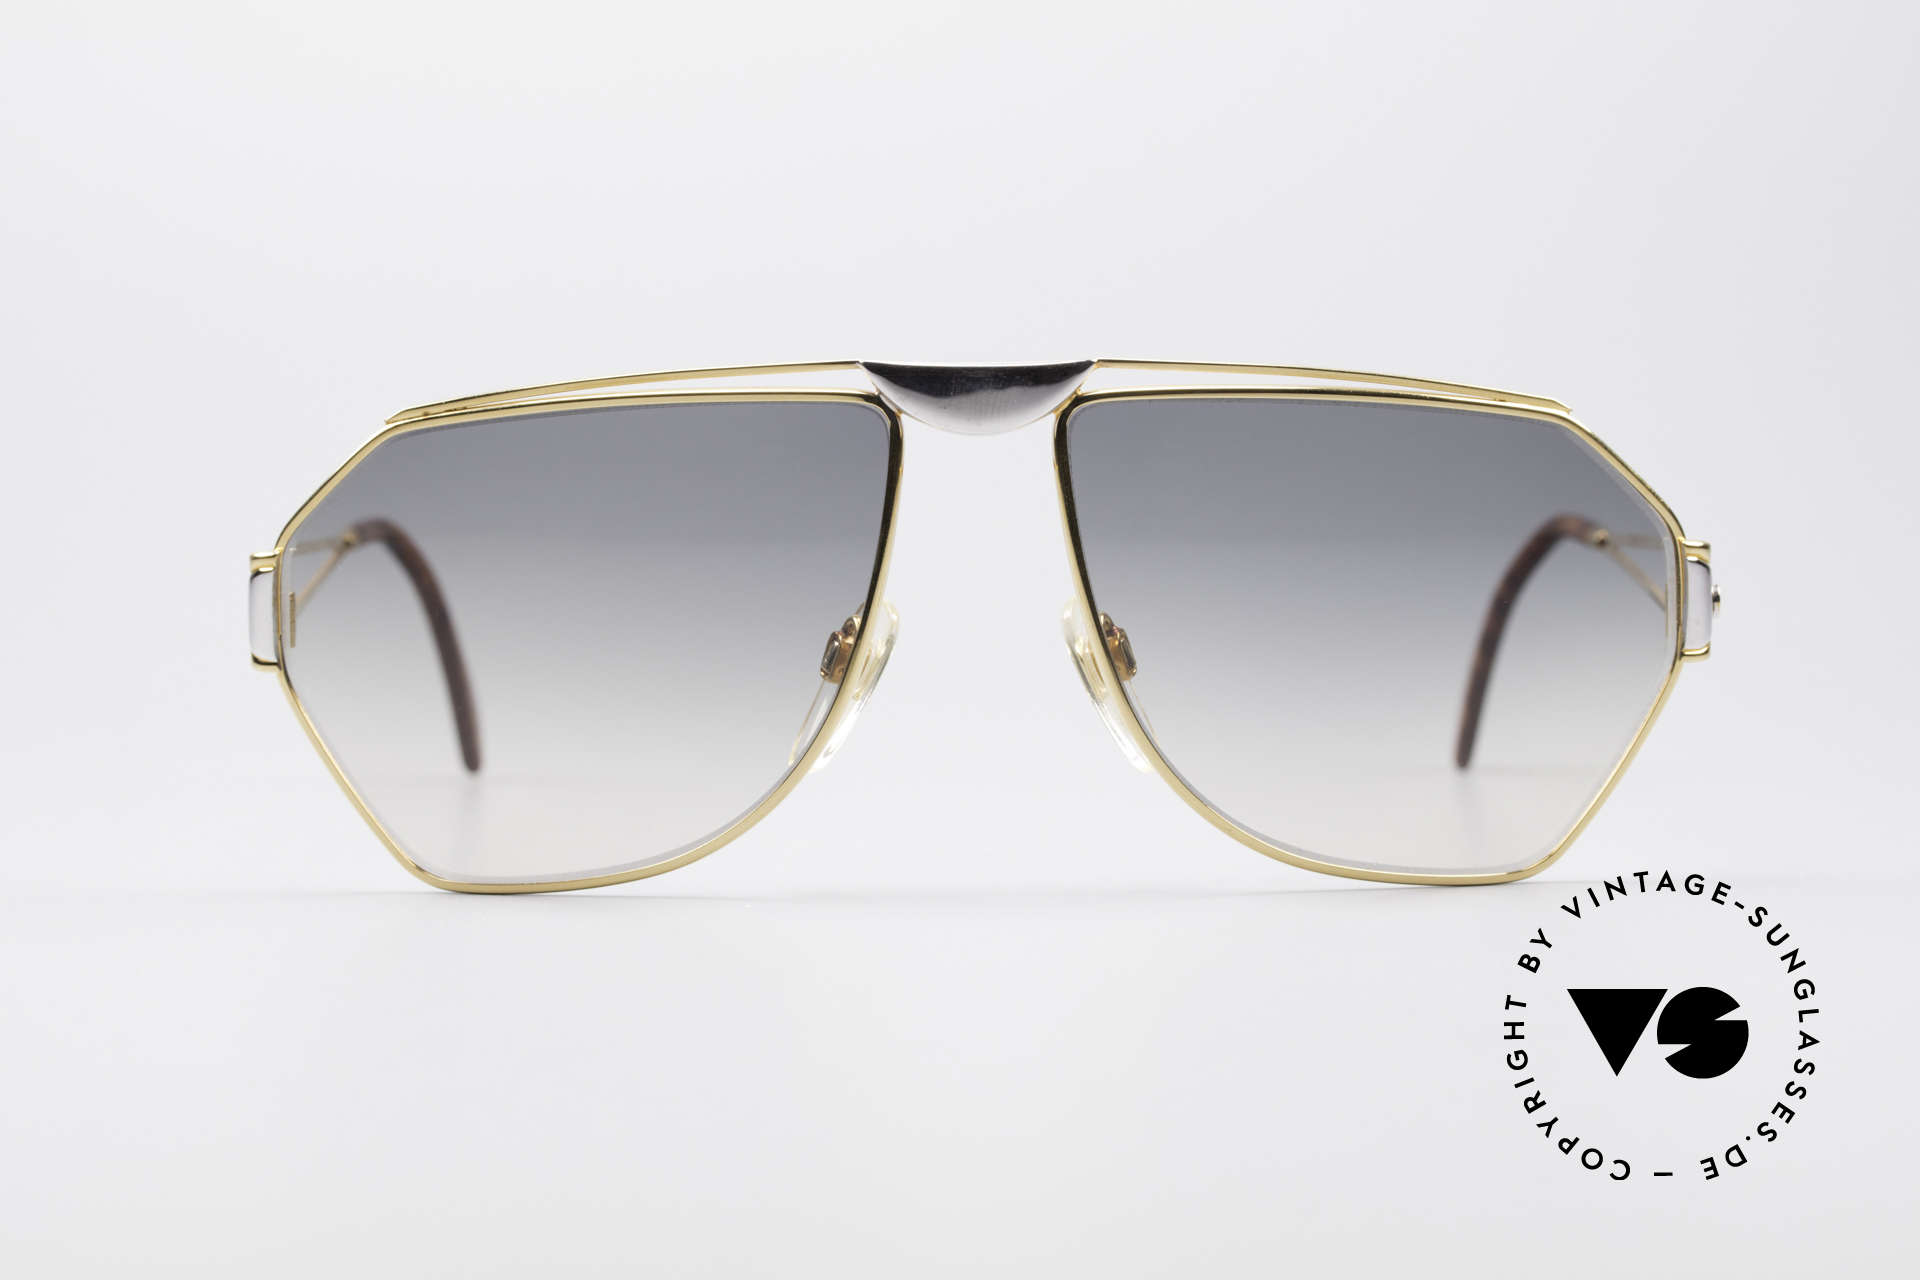 St. Moritz 403 80's Jupiter Sunglasses, designer shades with Jupiter symbol on the left temple, Made for Men